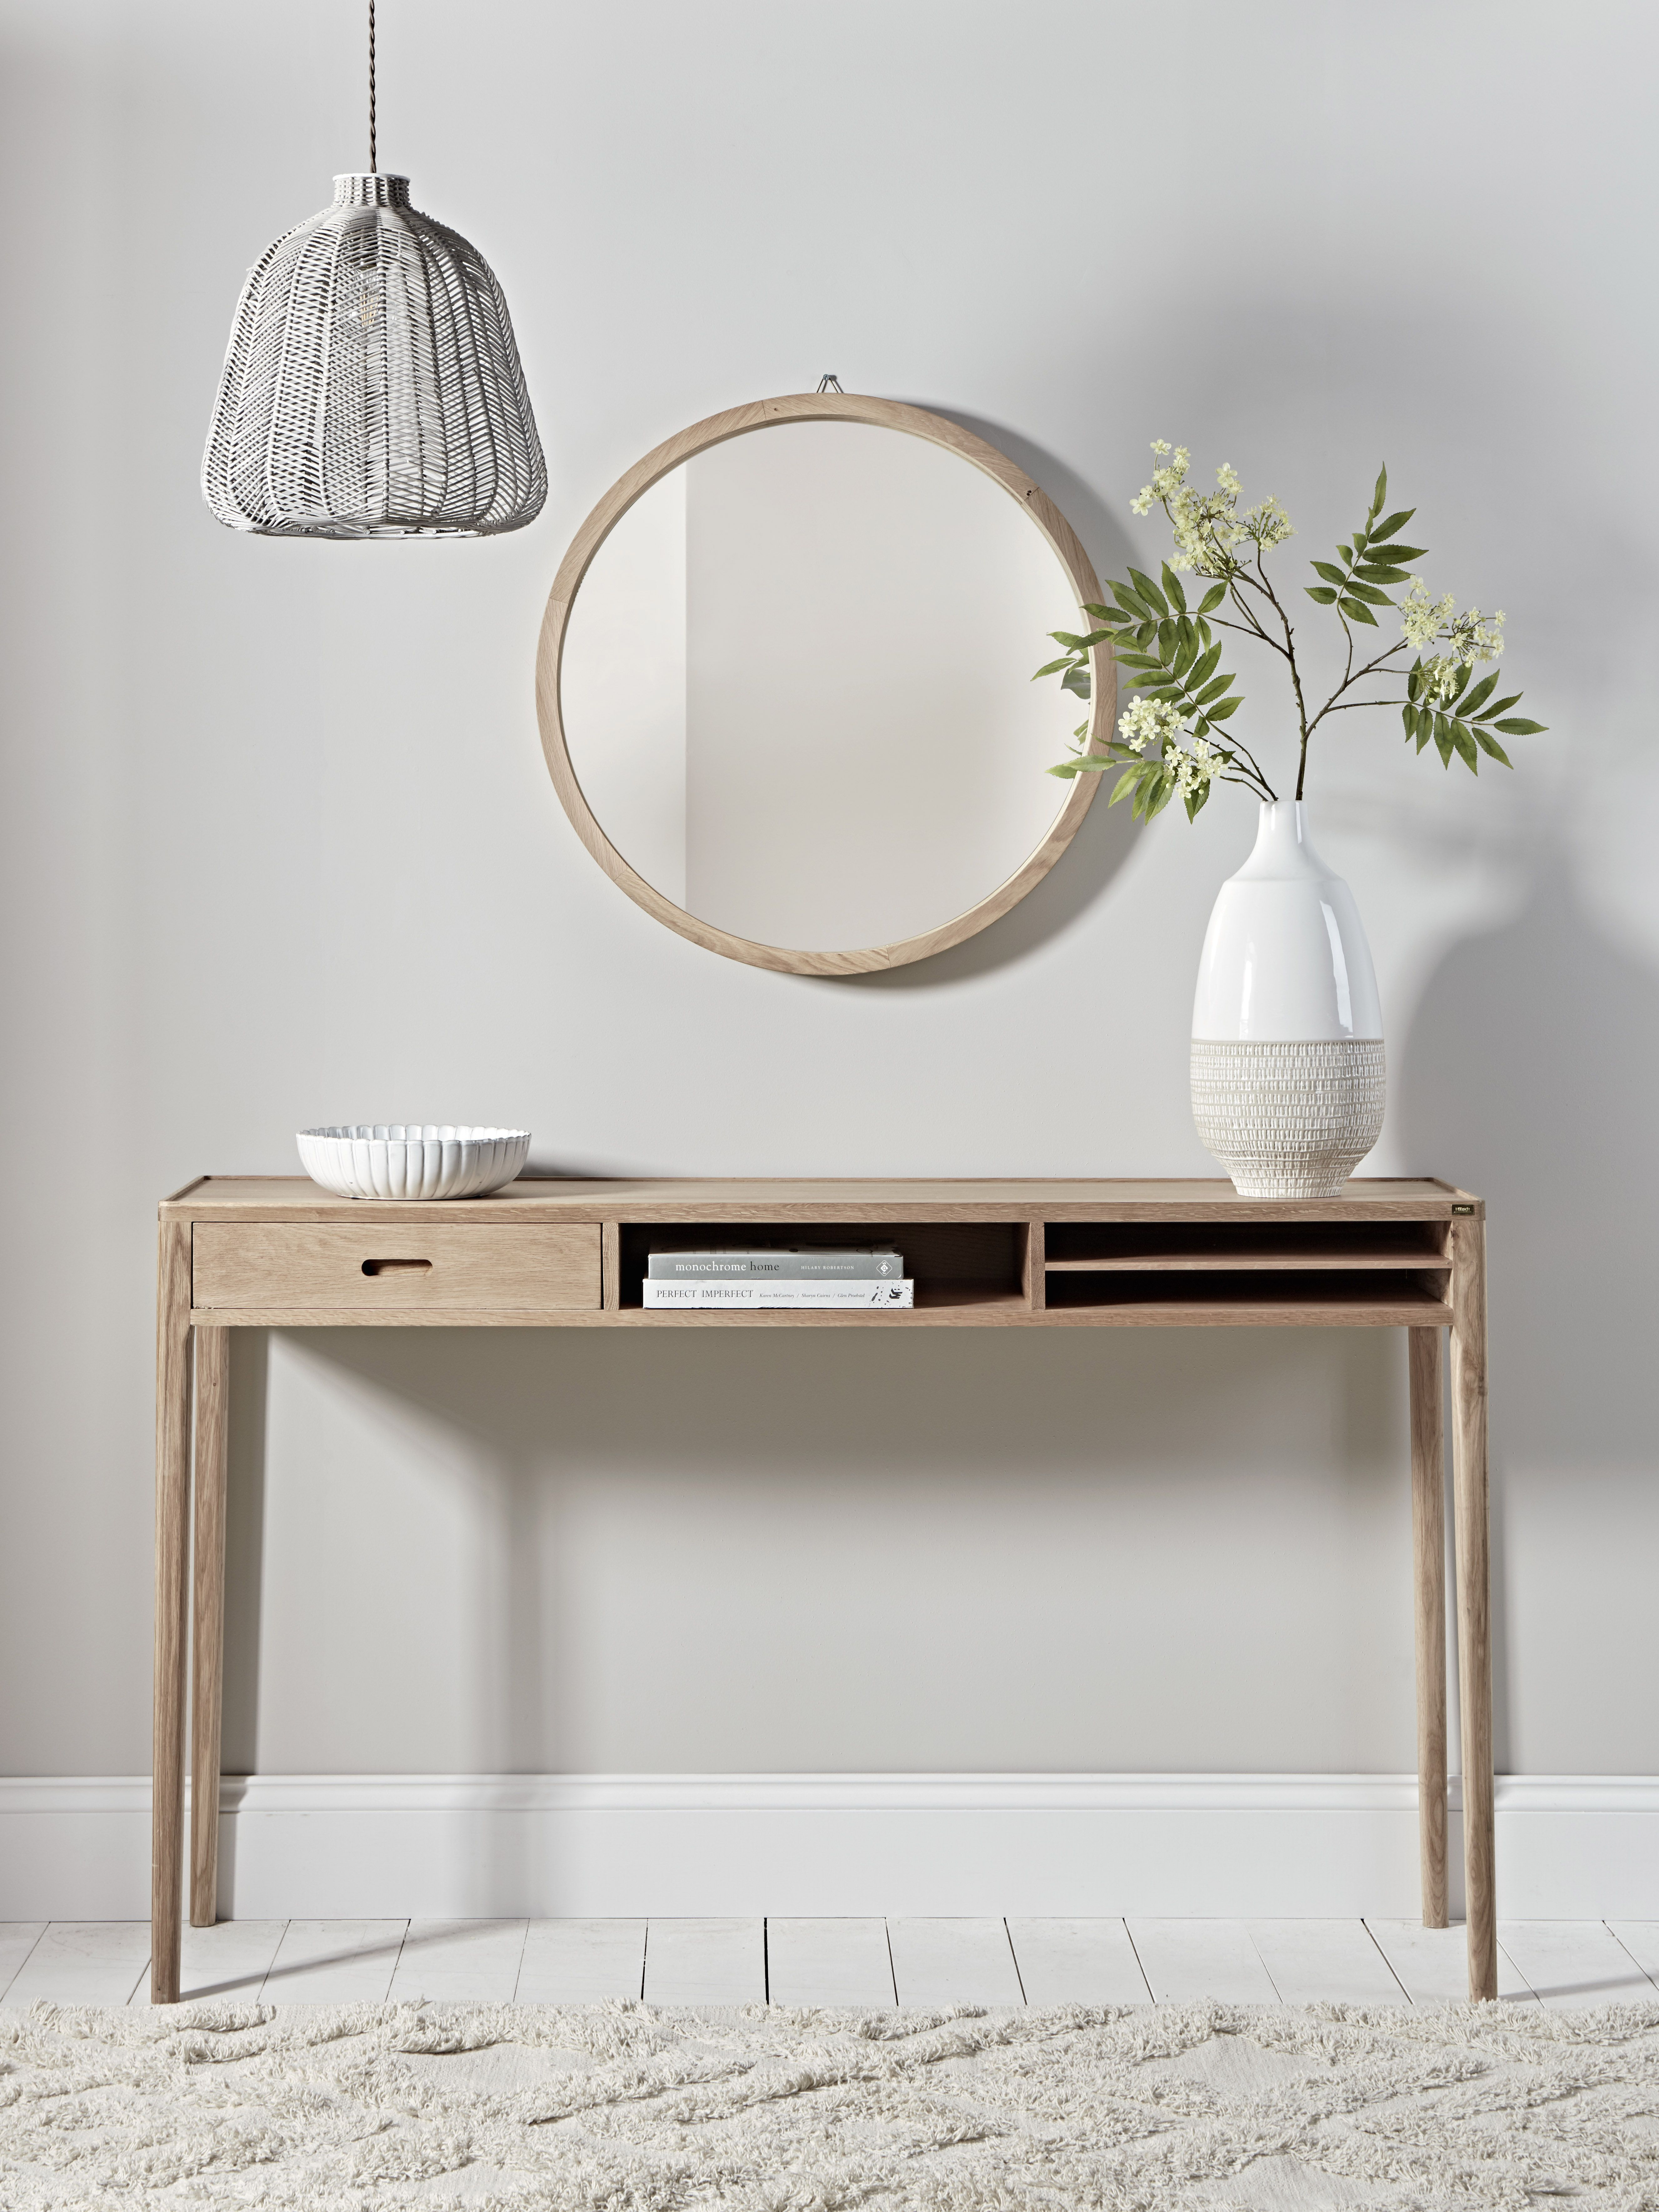 hallway, white wall, white wooden floor, wooden console table with drawers, wooden framed round mirror, pendant, white rug